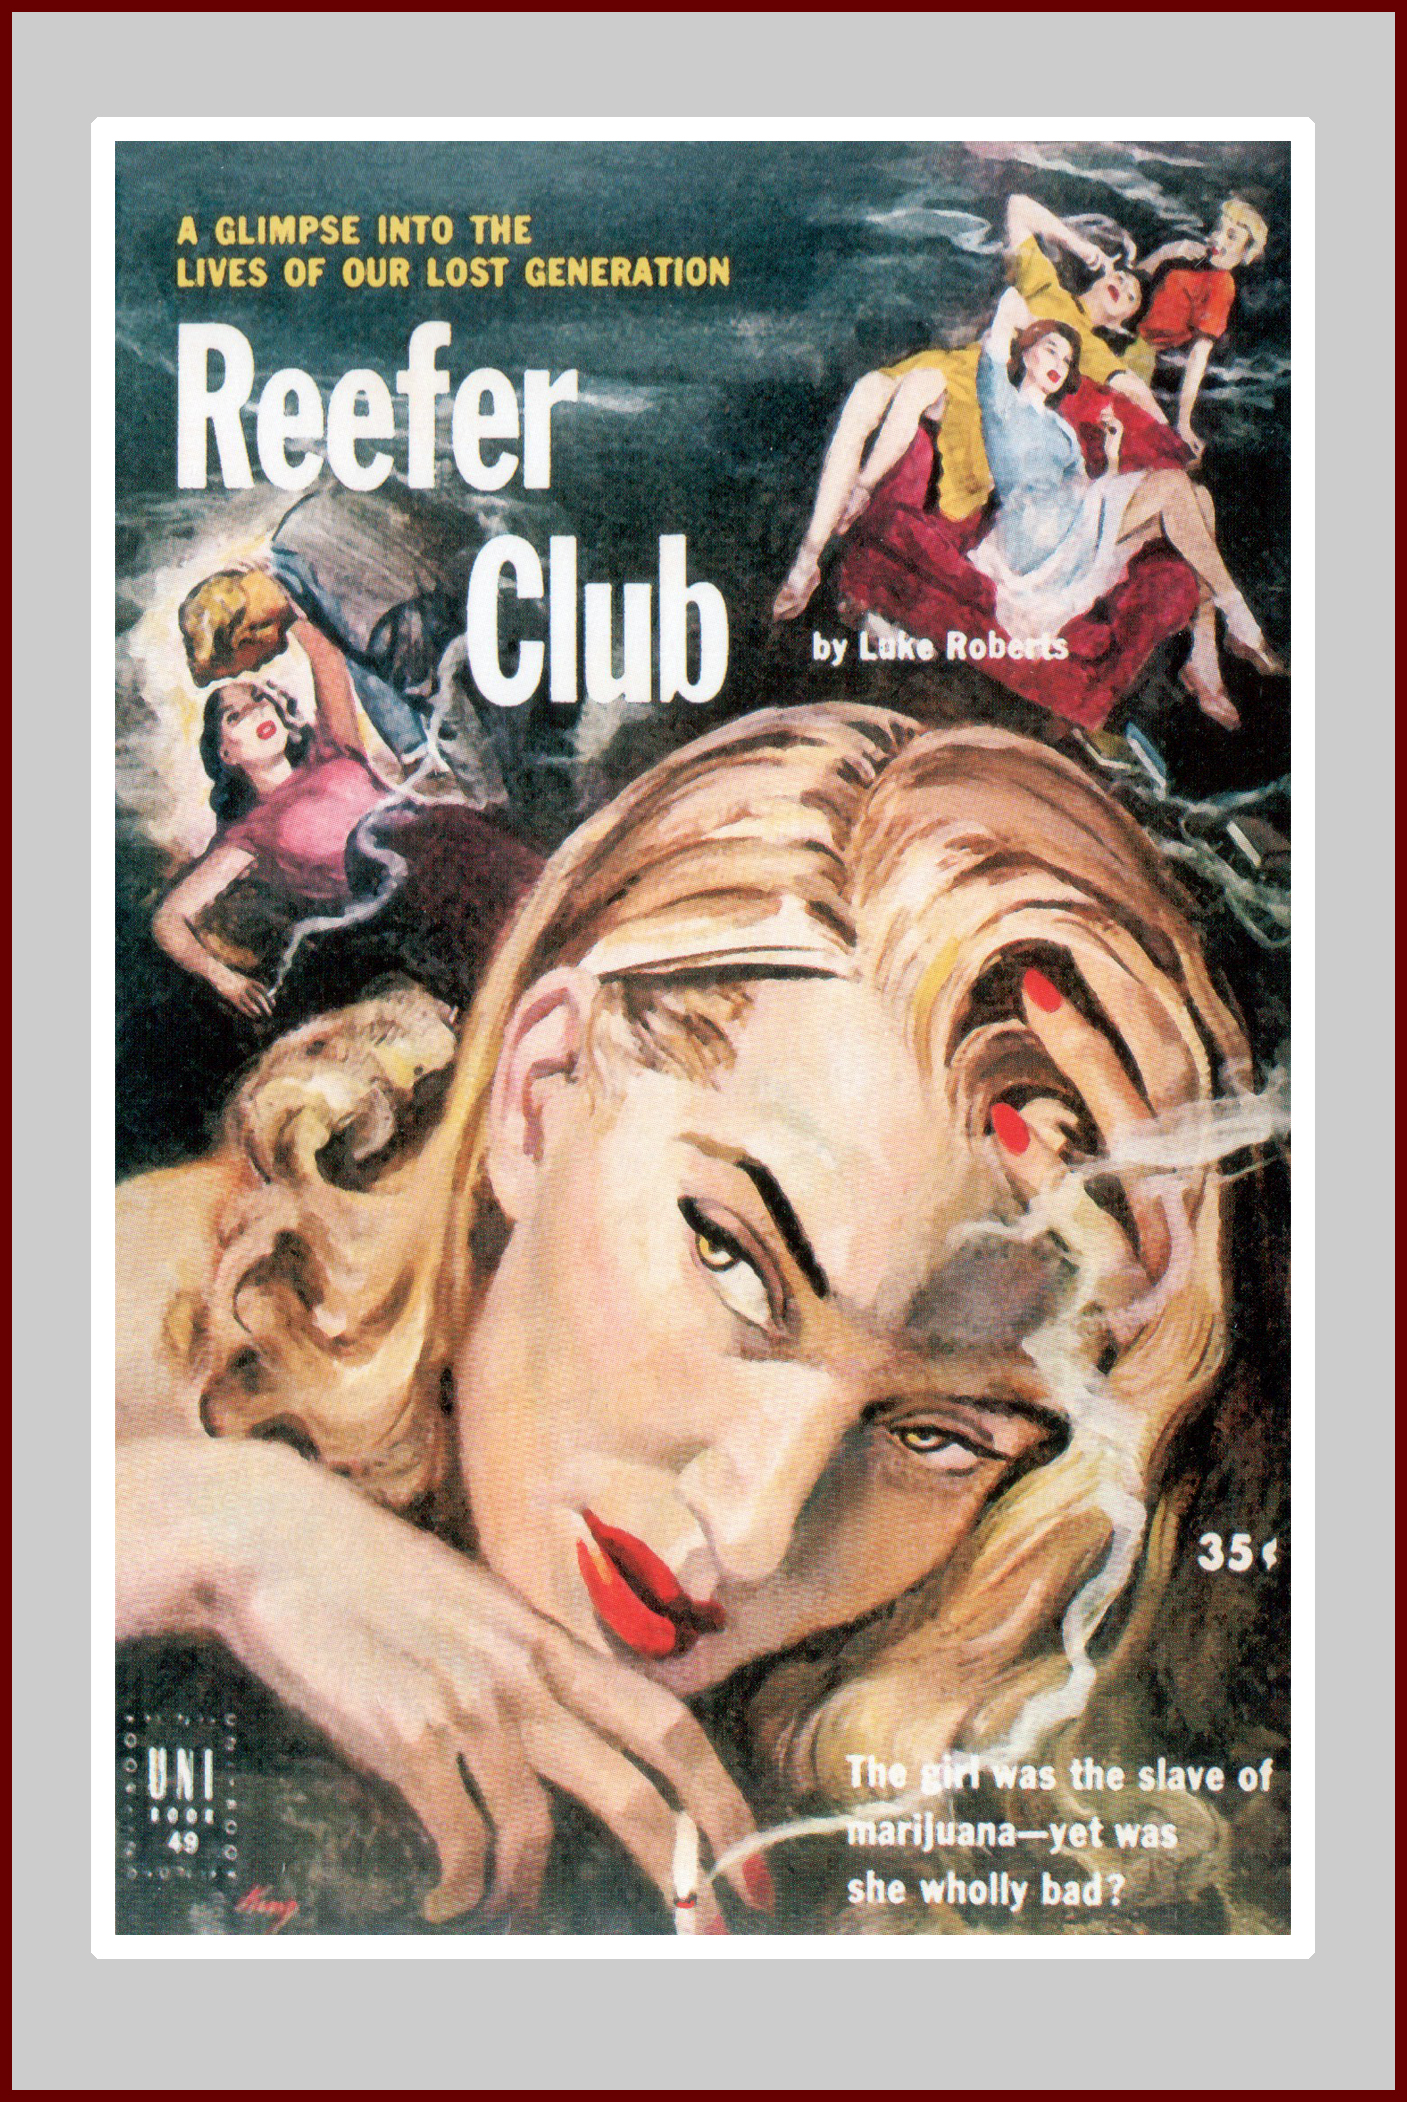 Reefer Club pulp fiction novel